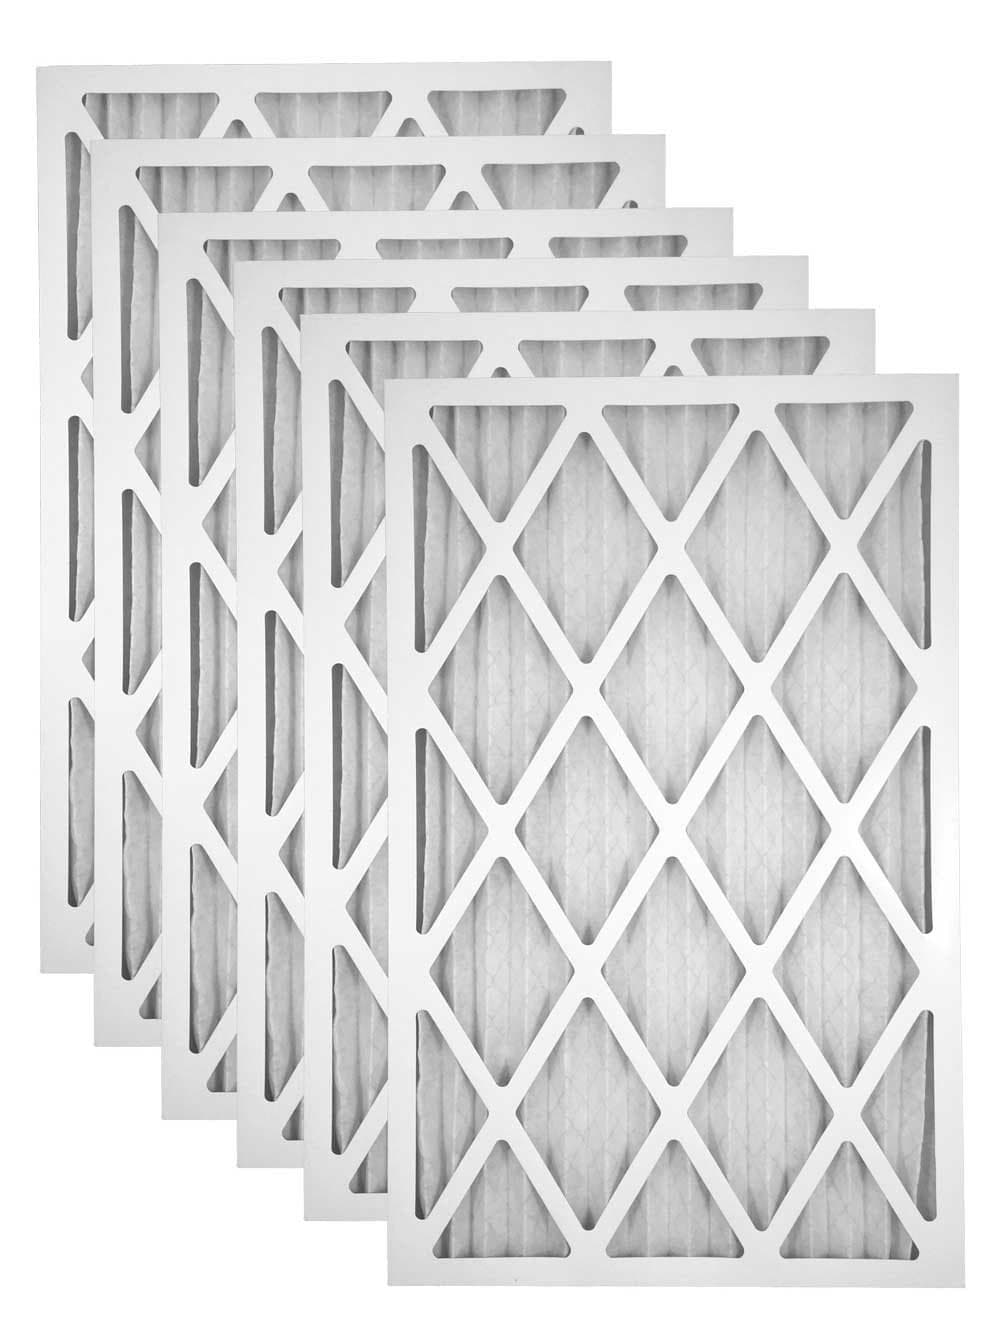 13x21.5x1 Merv 13 AC Furnace Filter - Case of 6